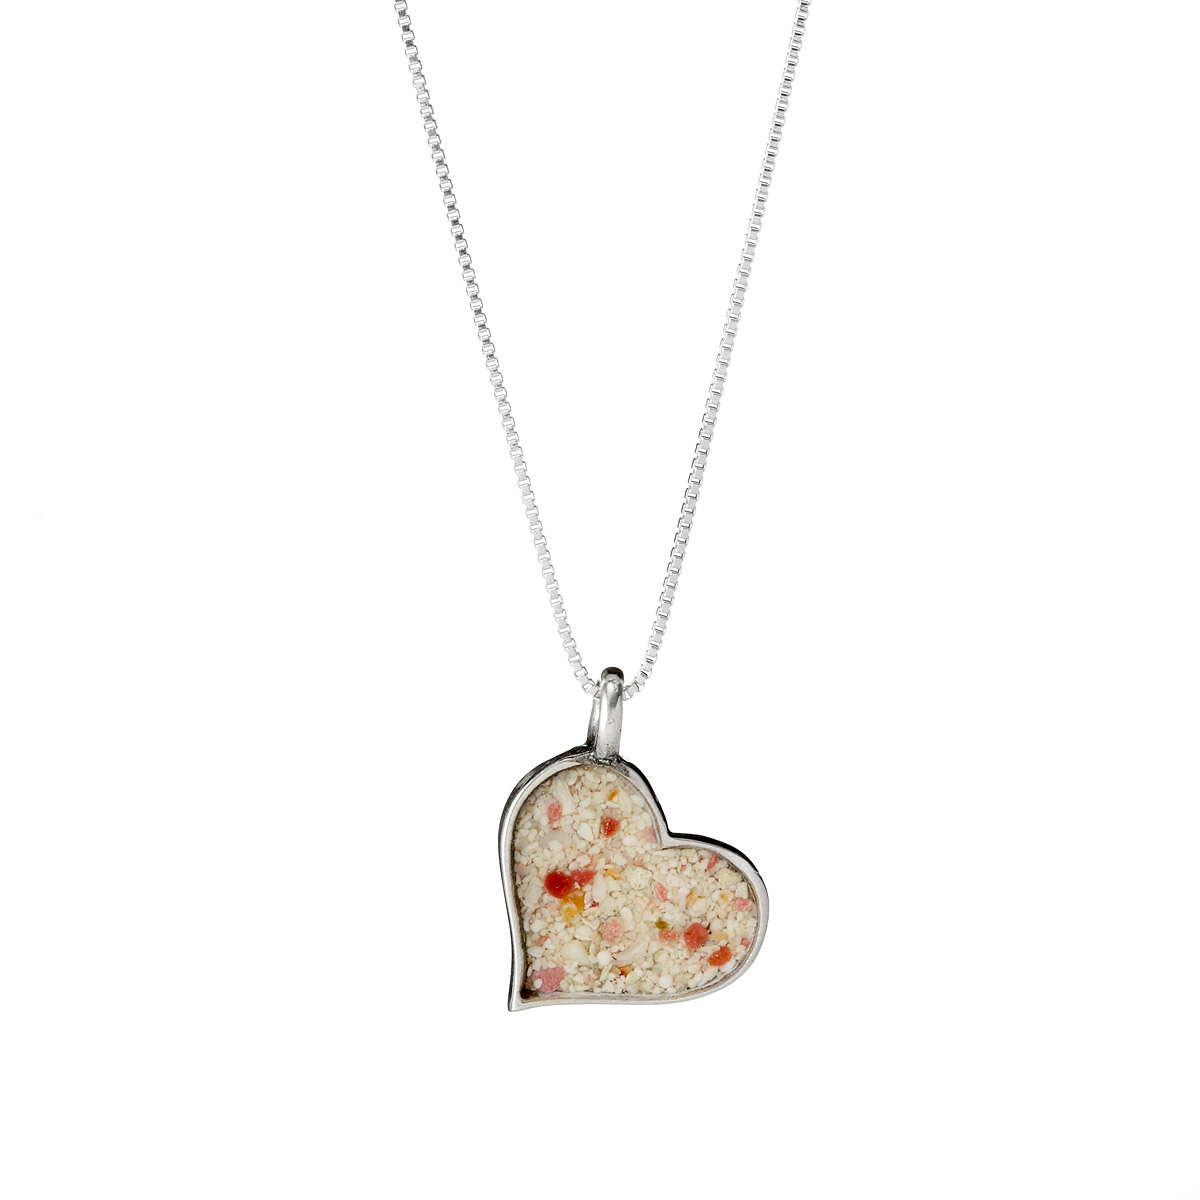 Dune Jewelry Offers the Perfect Gift Ideas for Valentine's Day